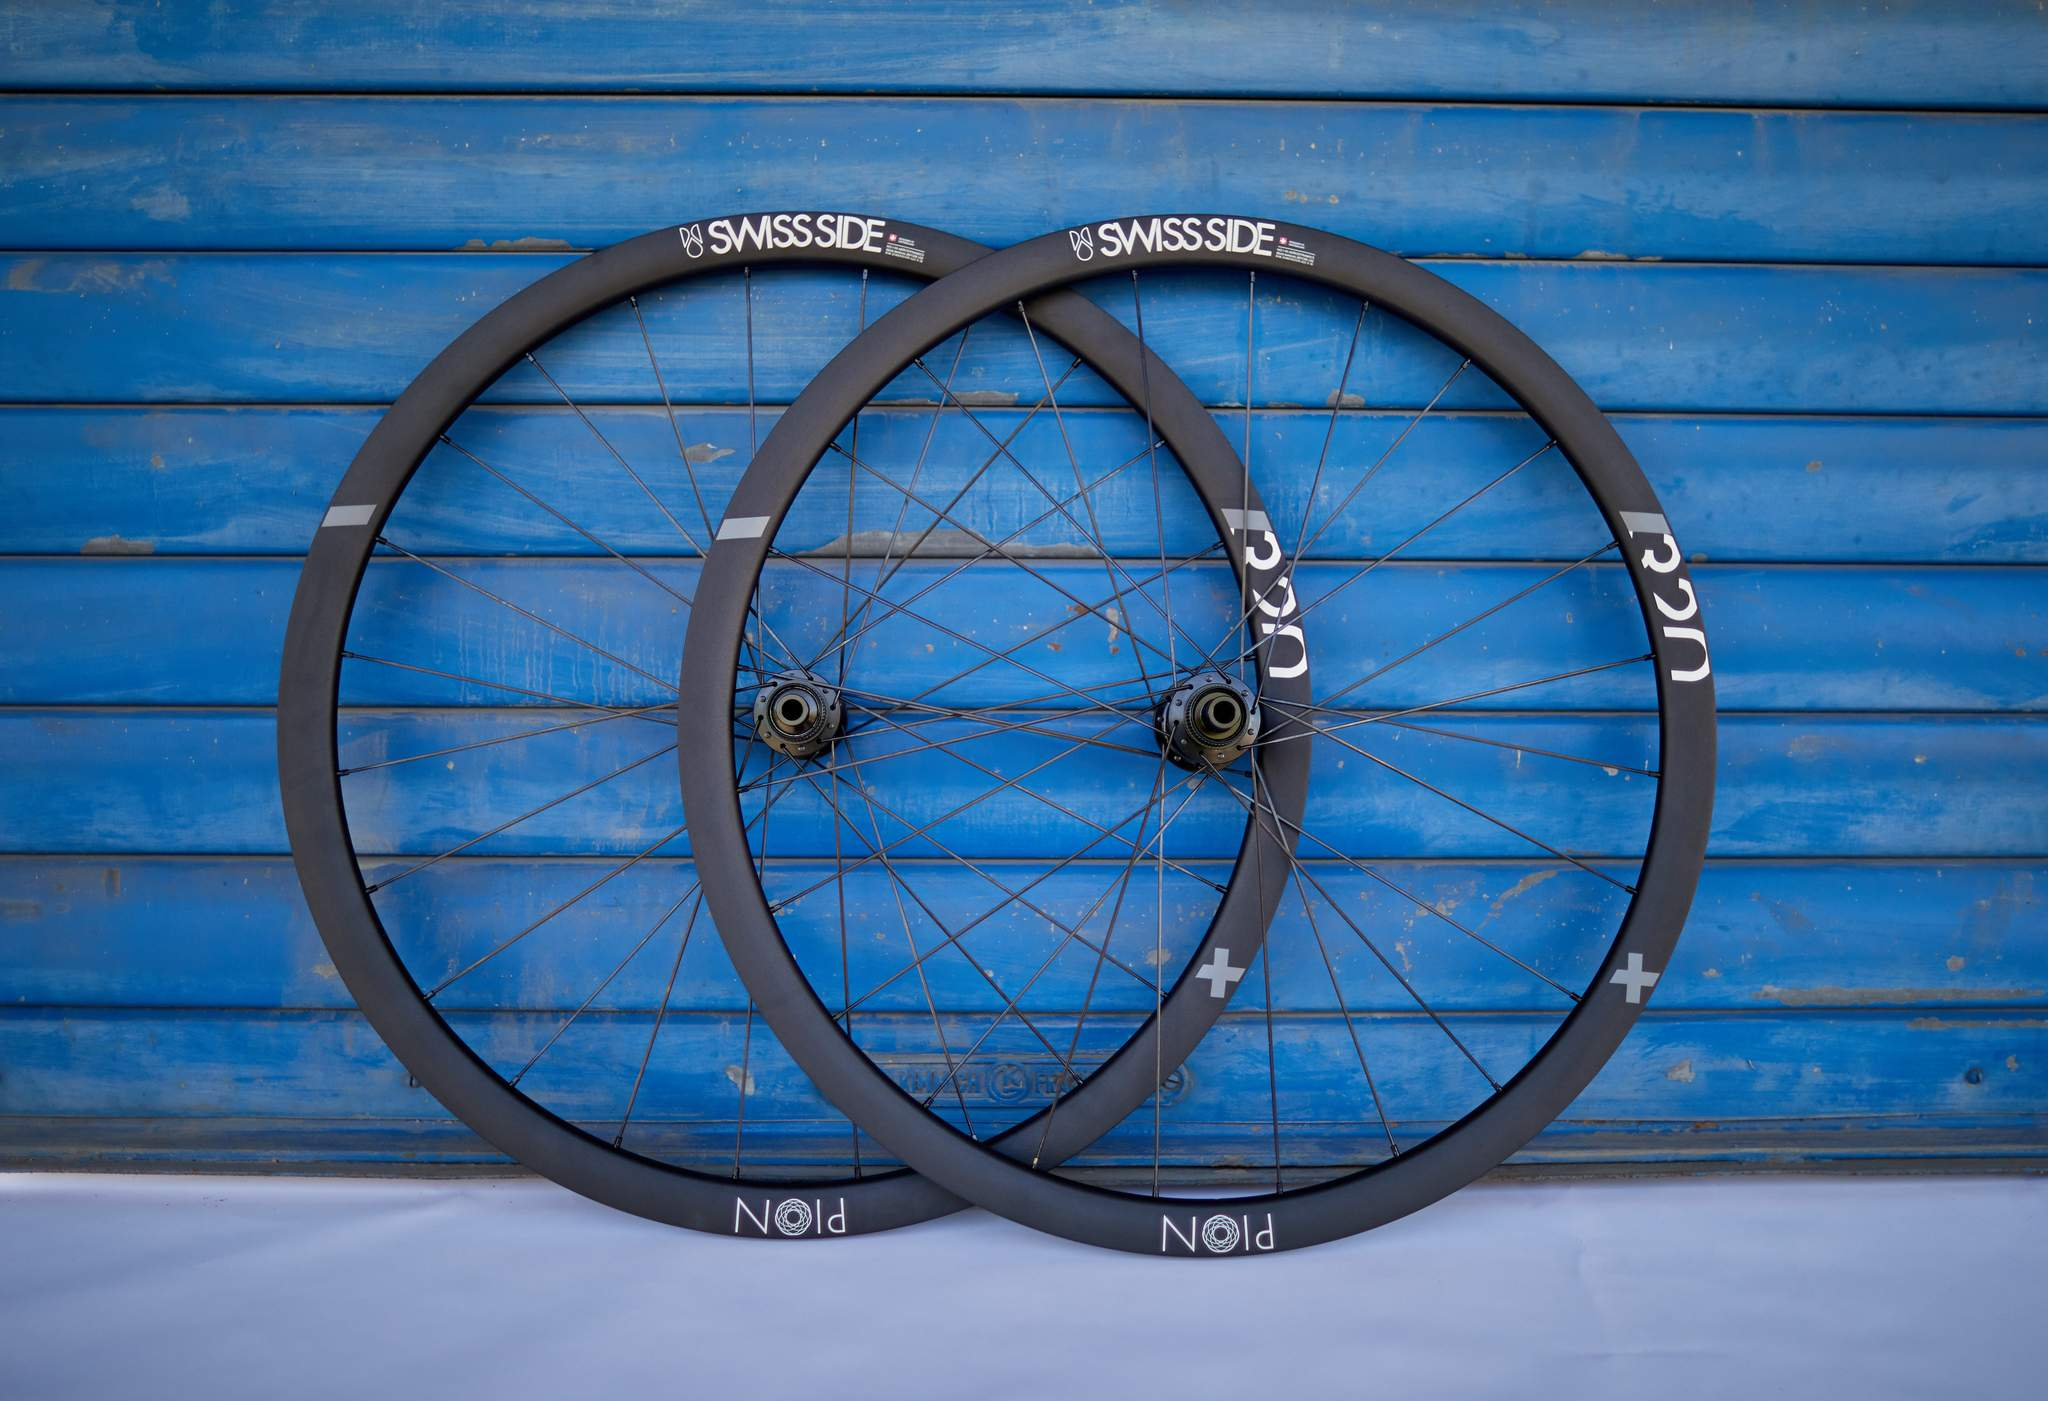 The New Swiss Side Pion Wheels Cadence Mag